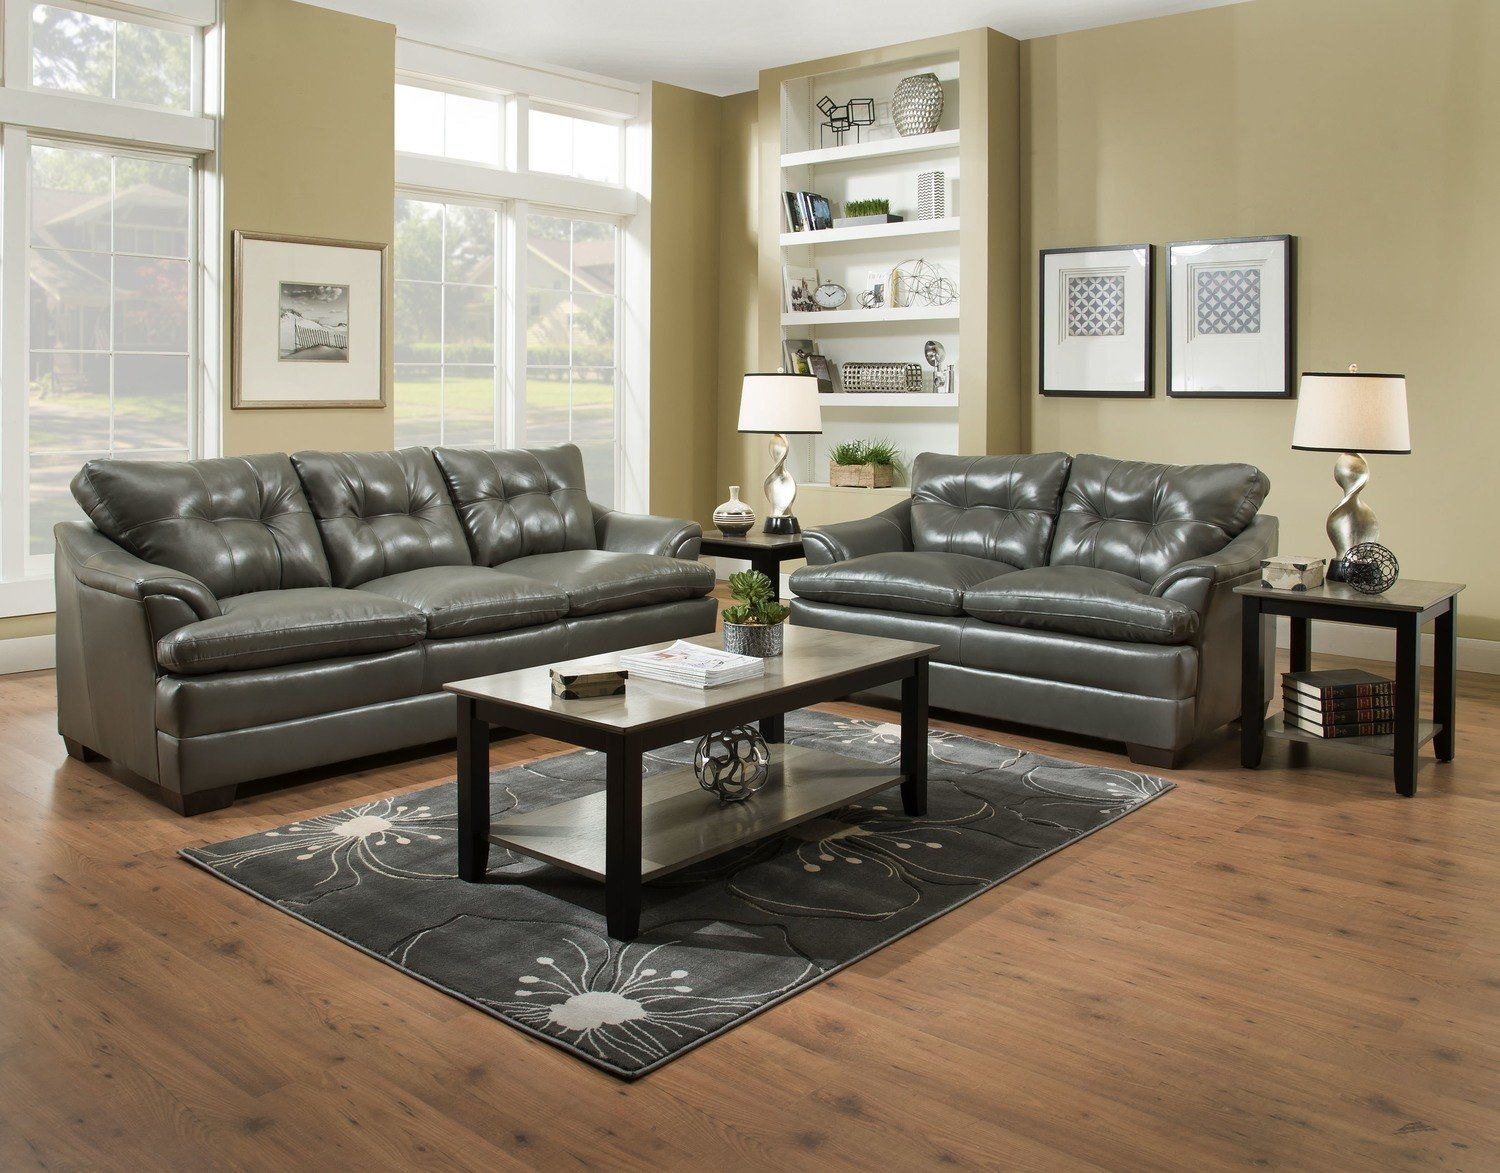 Best Apollo Charcoal Sofa And Love Seat Set 5122 799 00 400 x 300